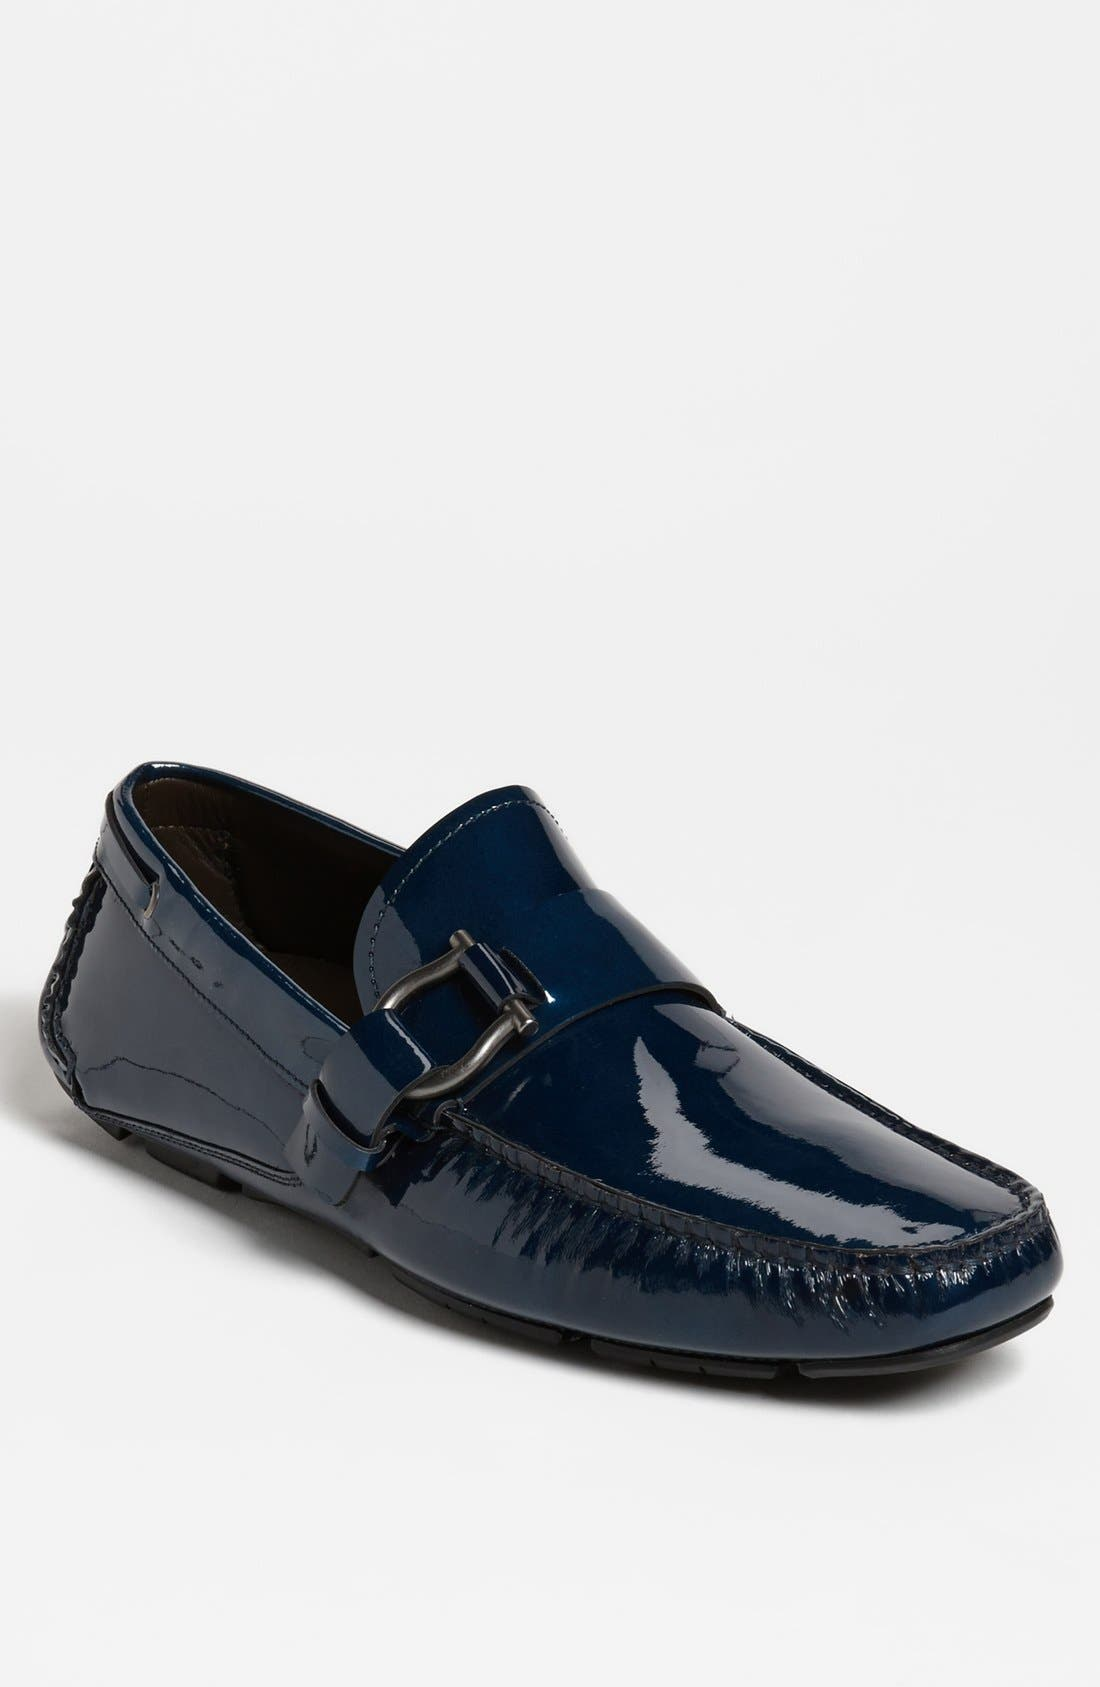 Main Image - Salvatore Ferragamo 'Cabo' Driving Shoe